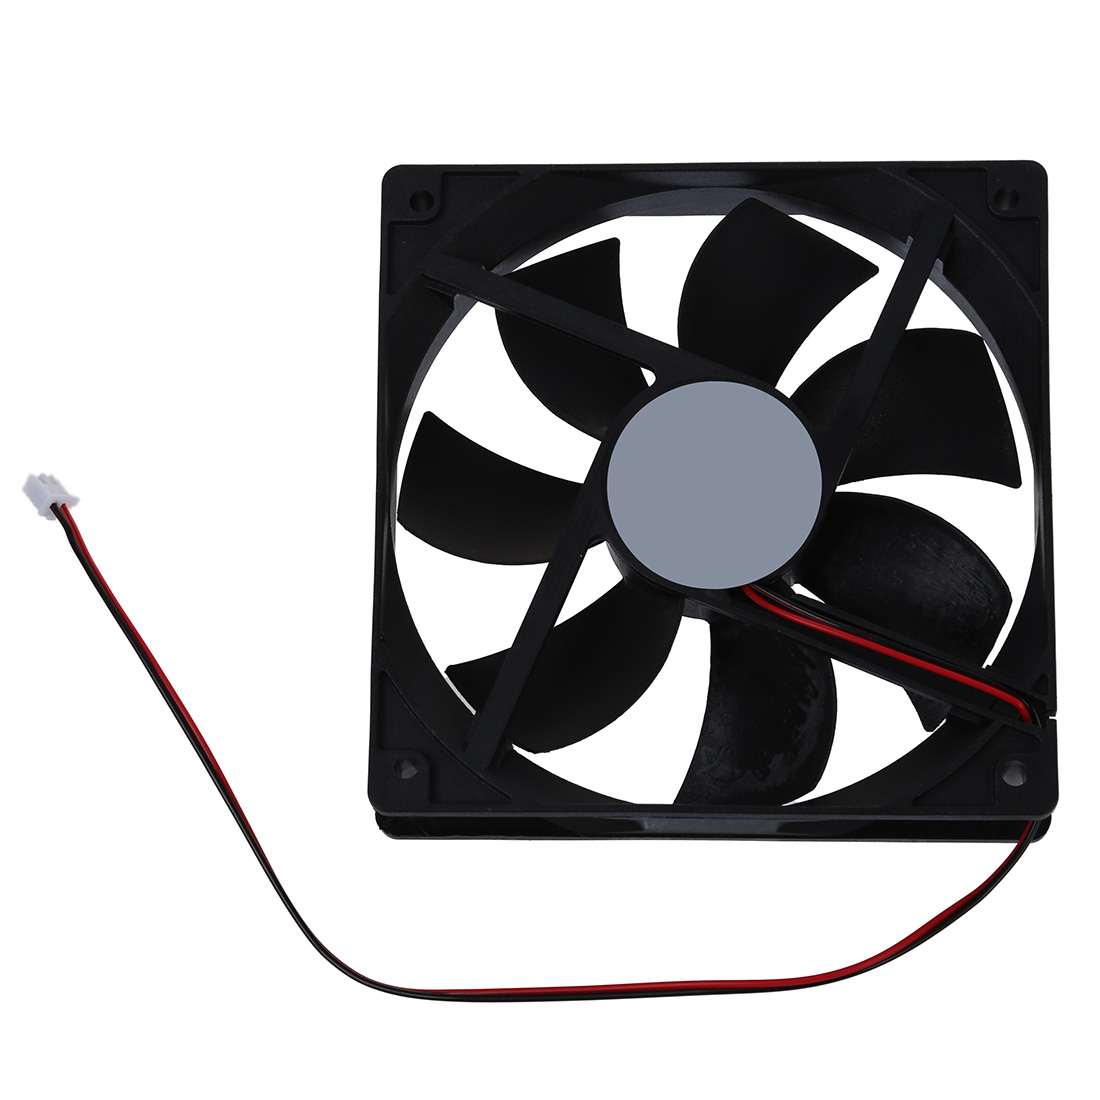 120mm x 25mm 12V 2Pin Sleeve Bearing Cooling Fan for Computer Case120mm x 25mm 12V 2Pin Sleeve Bearing Cooling Fan for Computer Case